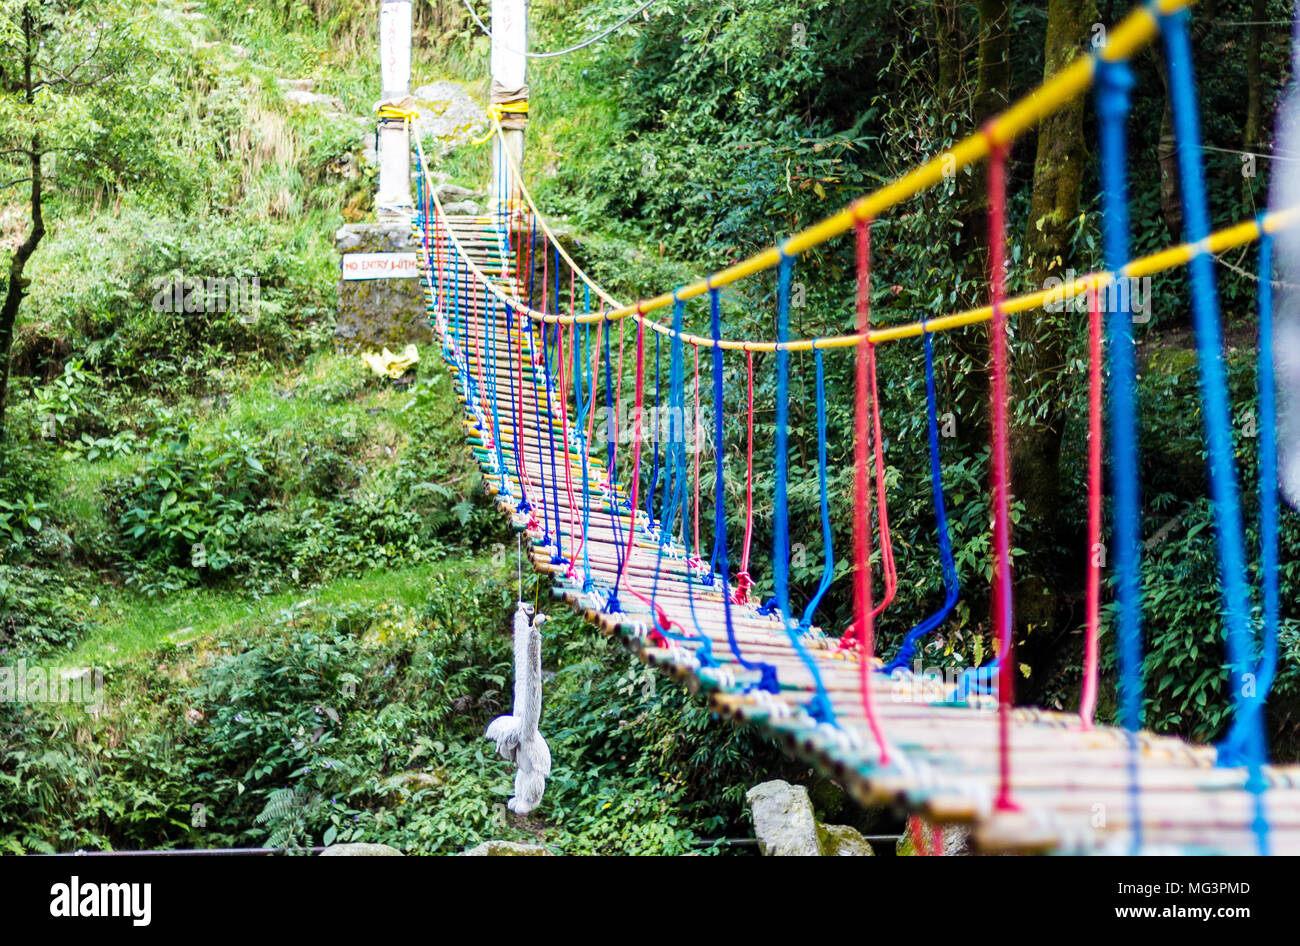 A hanging rope bridge over the waterfall in Panchpula Dalhousie, Himachal Pradesh, India. Used for adventure activities for kids and teenagers. - Stock Image